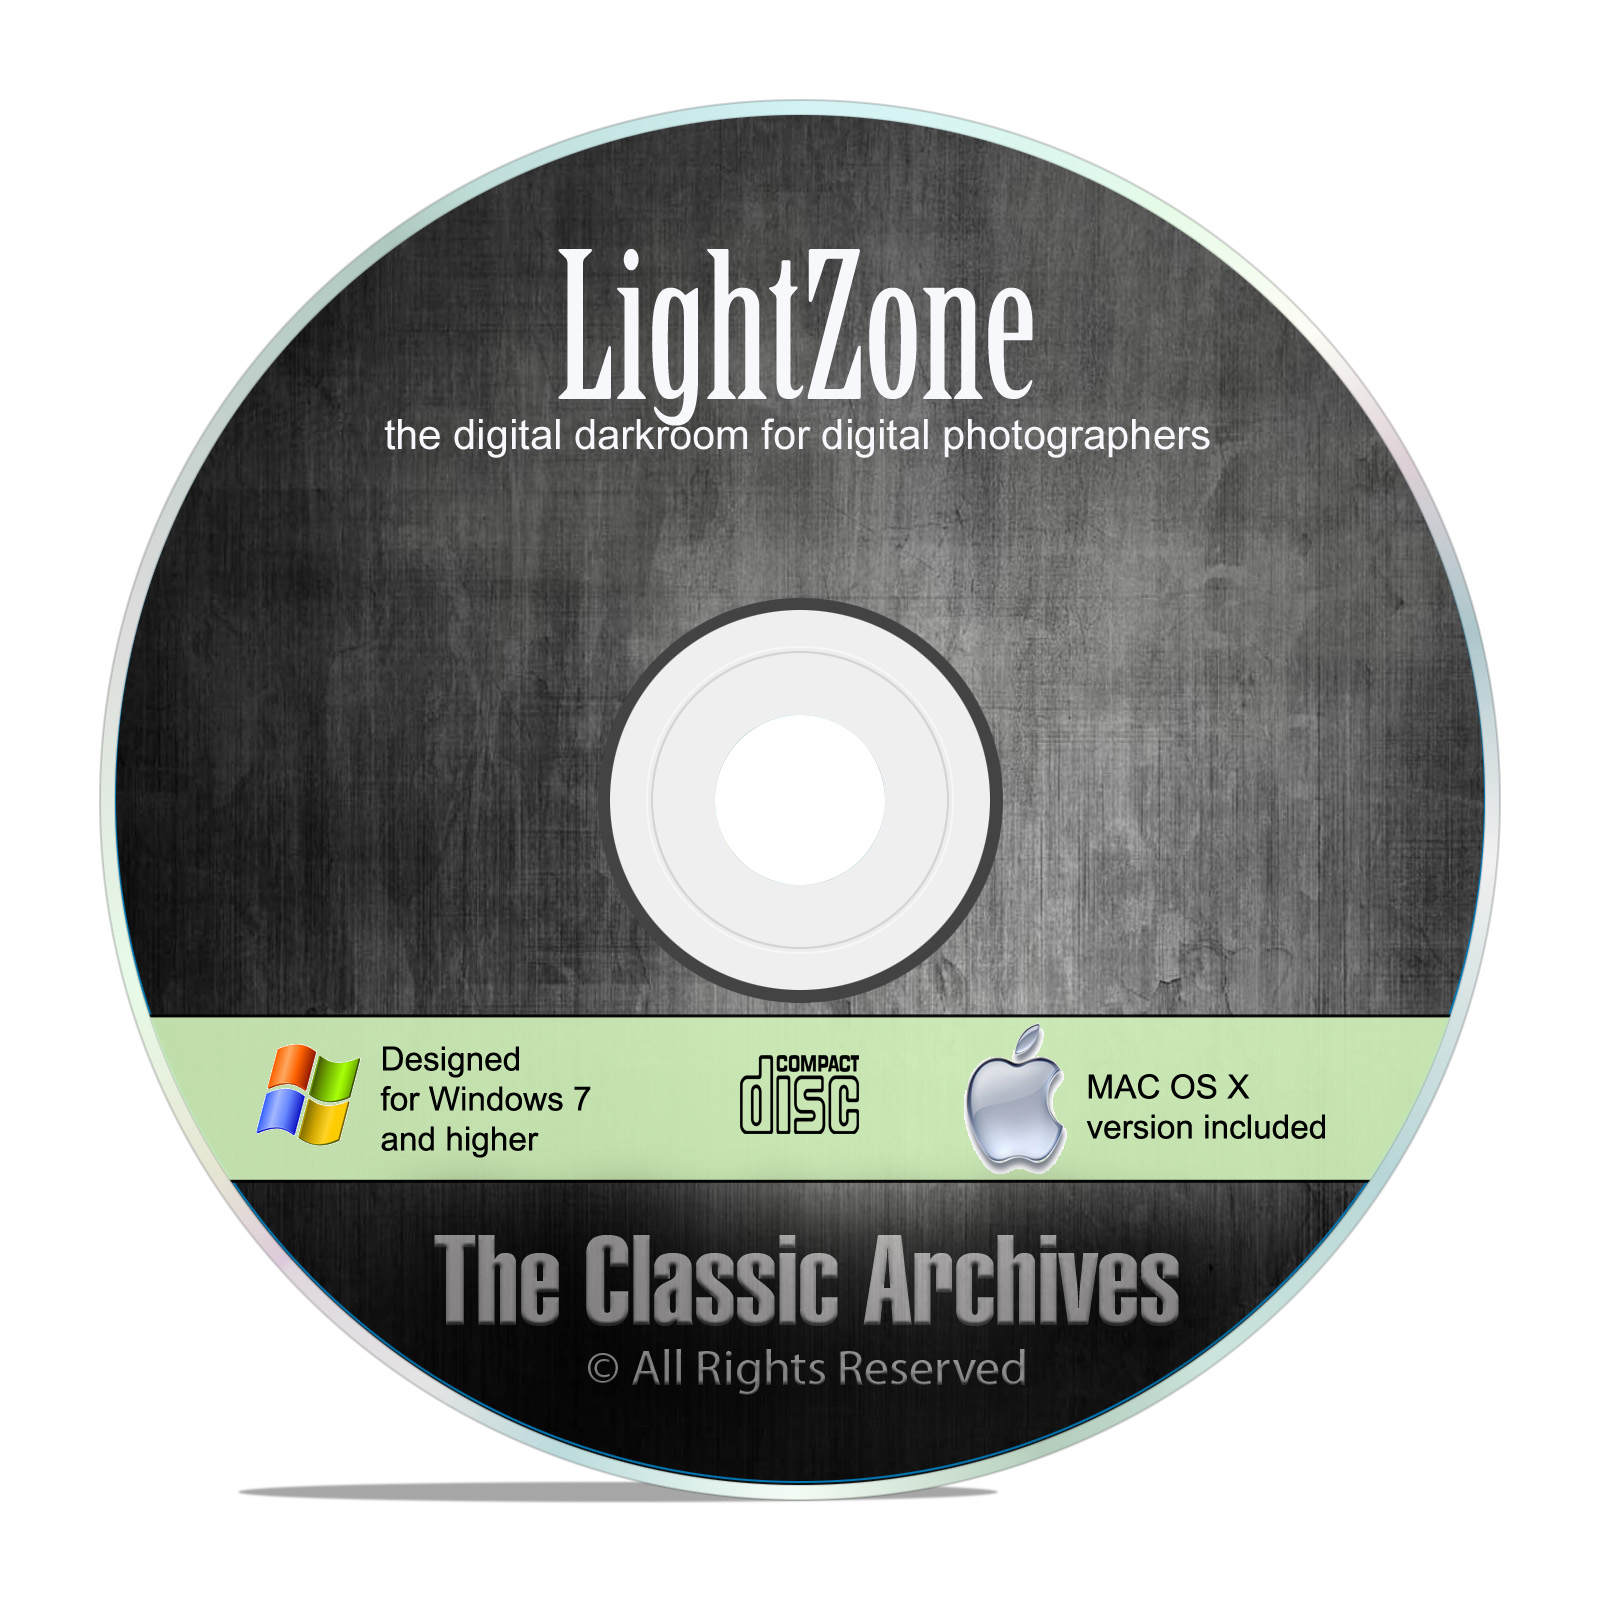 LightZone, Pro Lightroom Darkroom Digital Camera, Raw Image Photo Editor CD